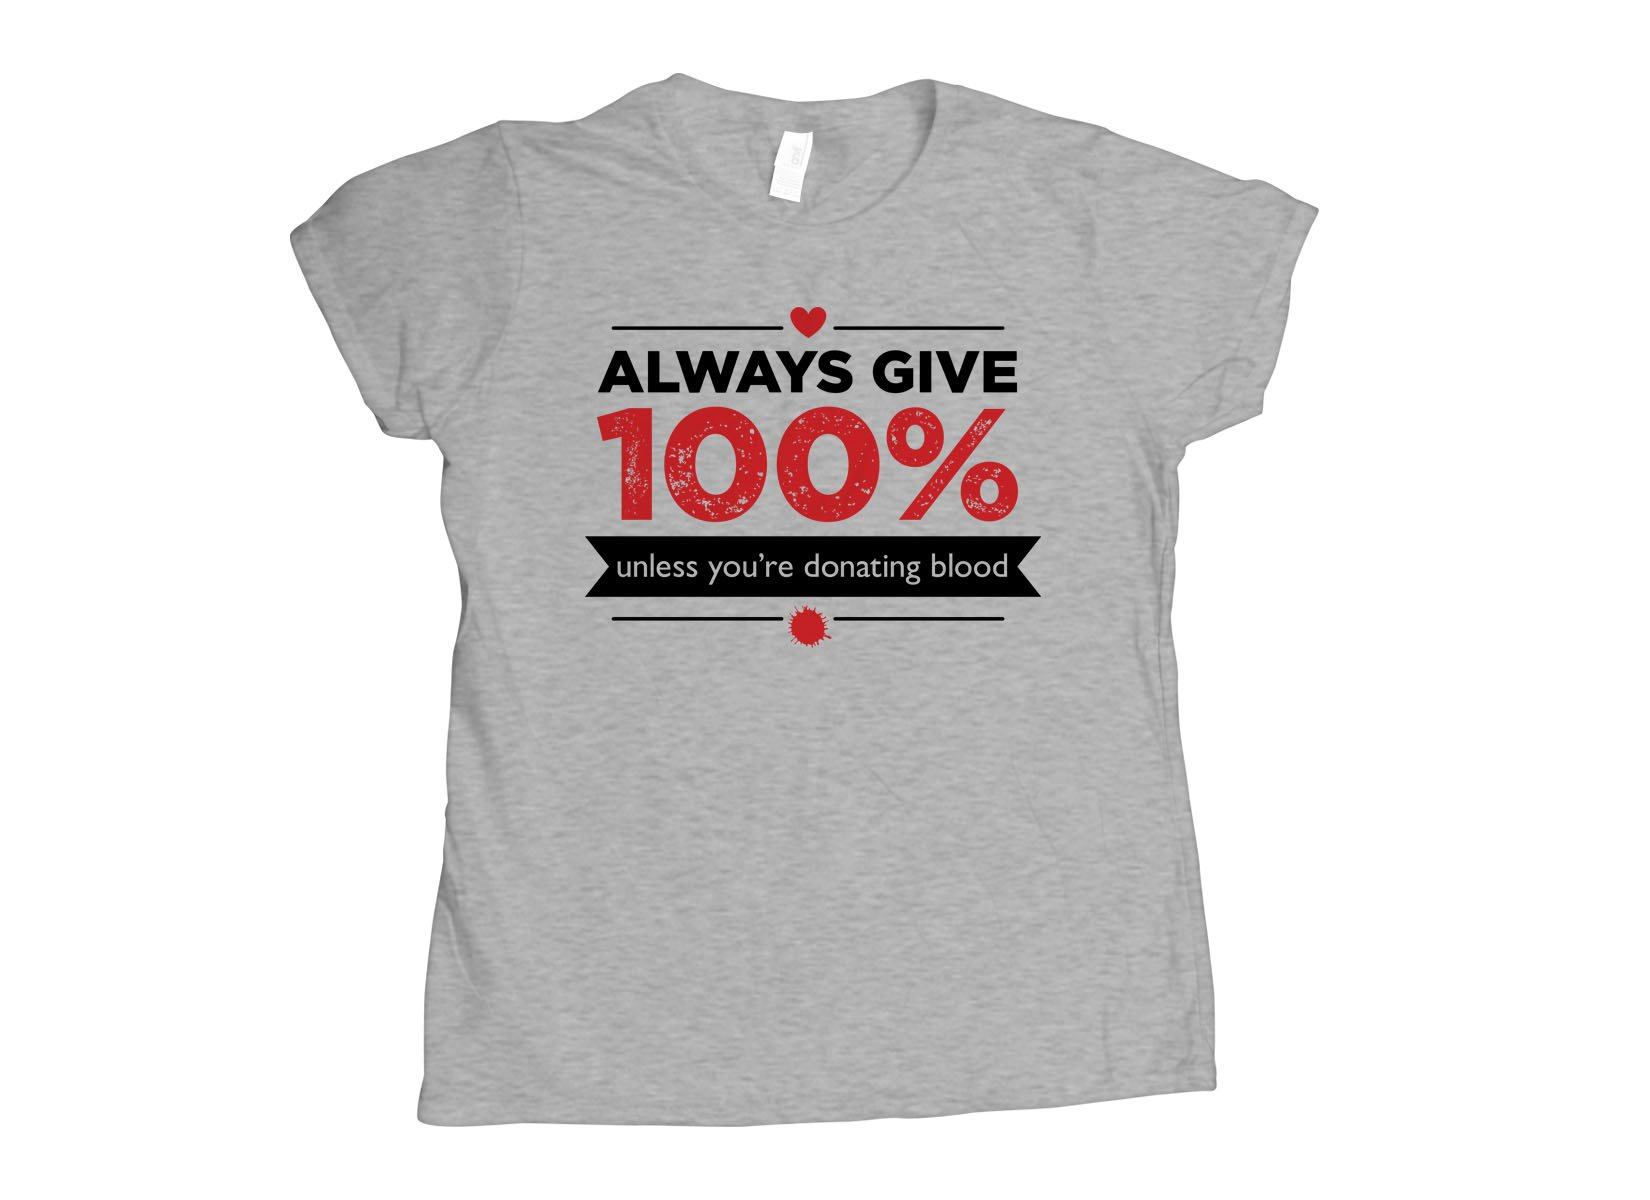 Always Give 100%, Unless You're Donating Blood on Womens T-Shirt